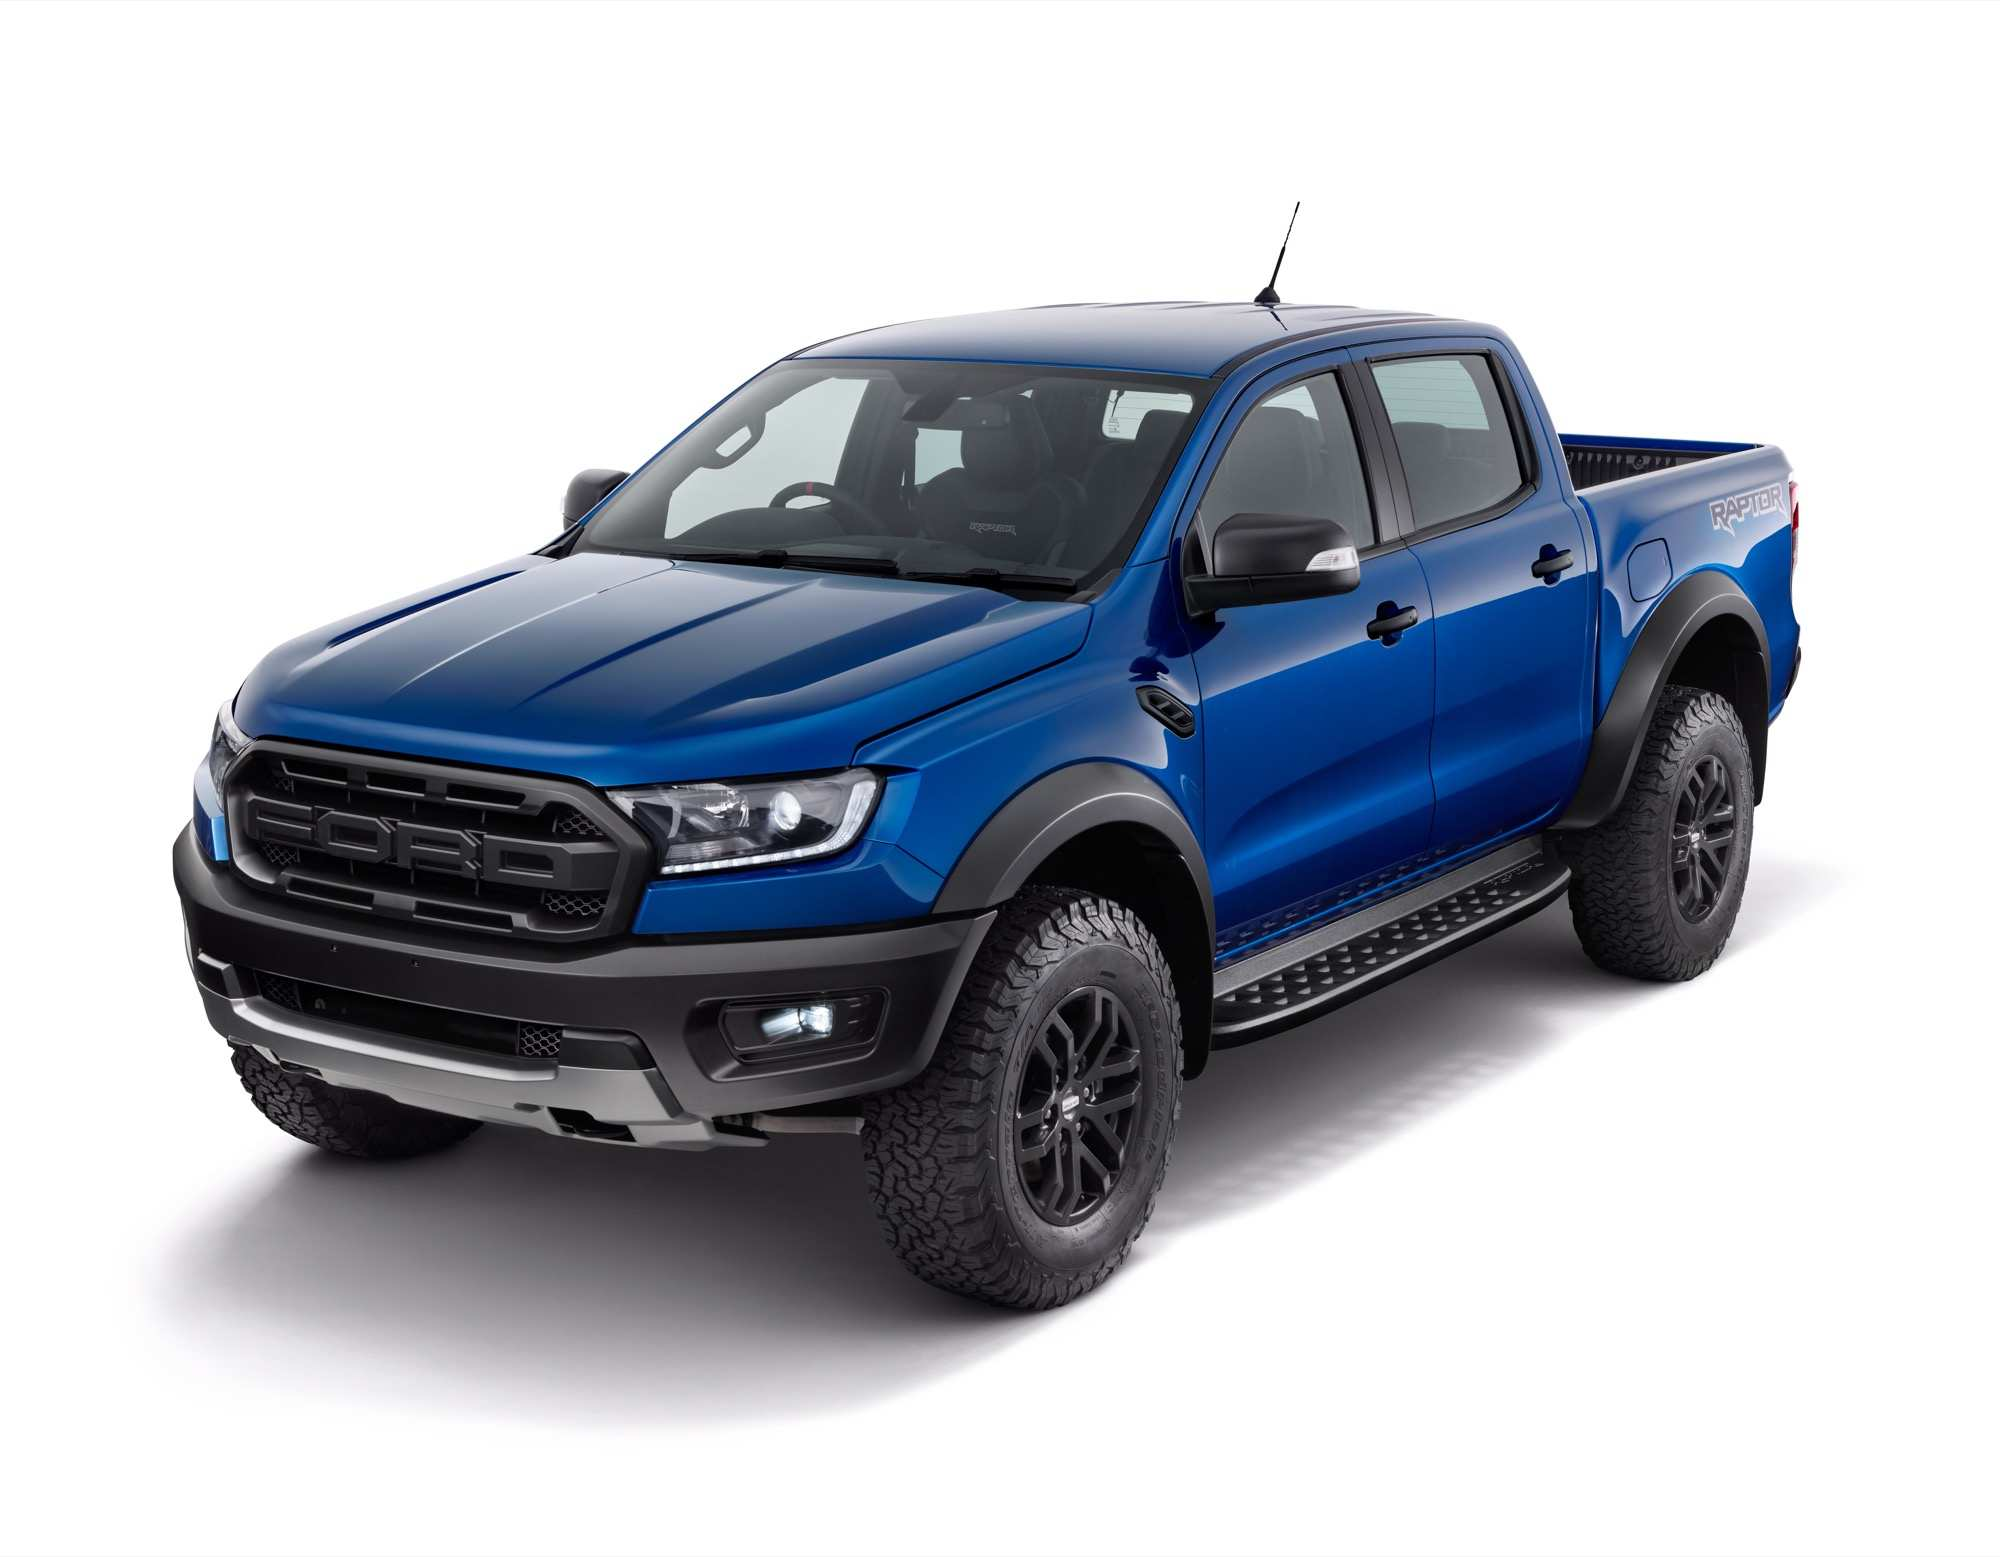 51 All New 2020 Ford Ranger Specs Redesign